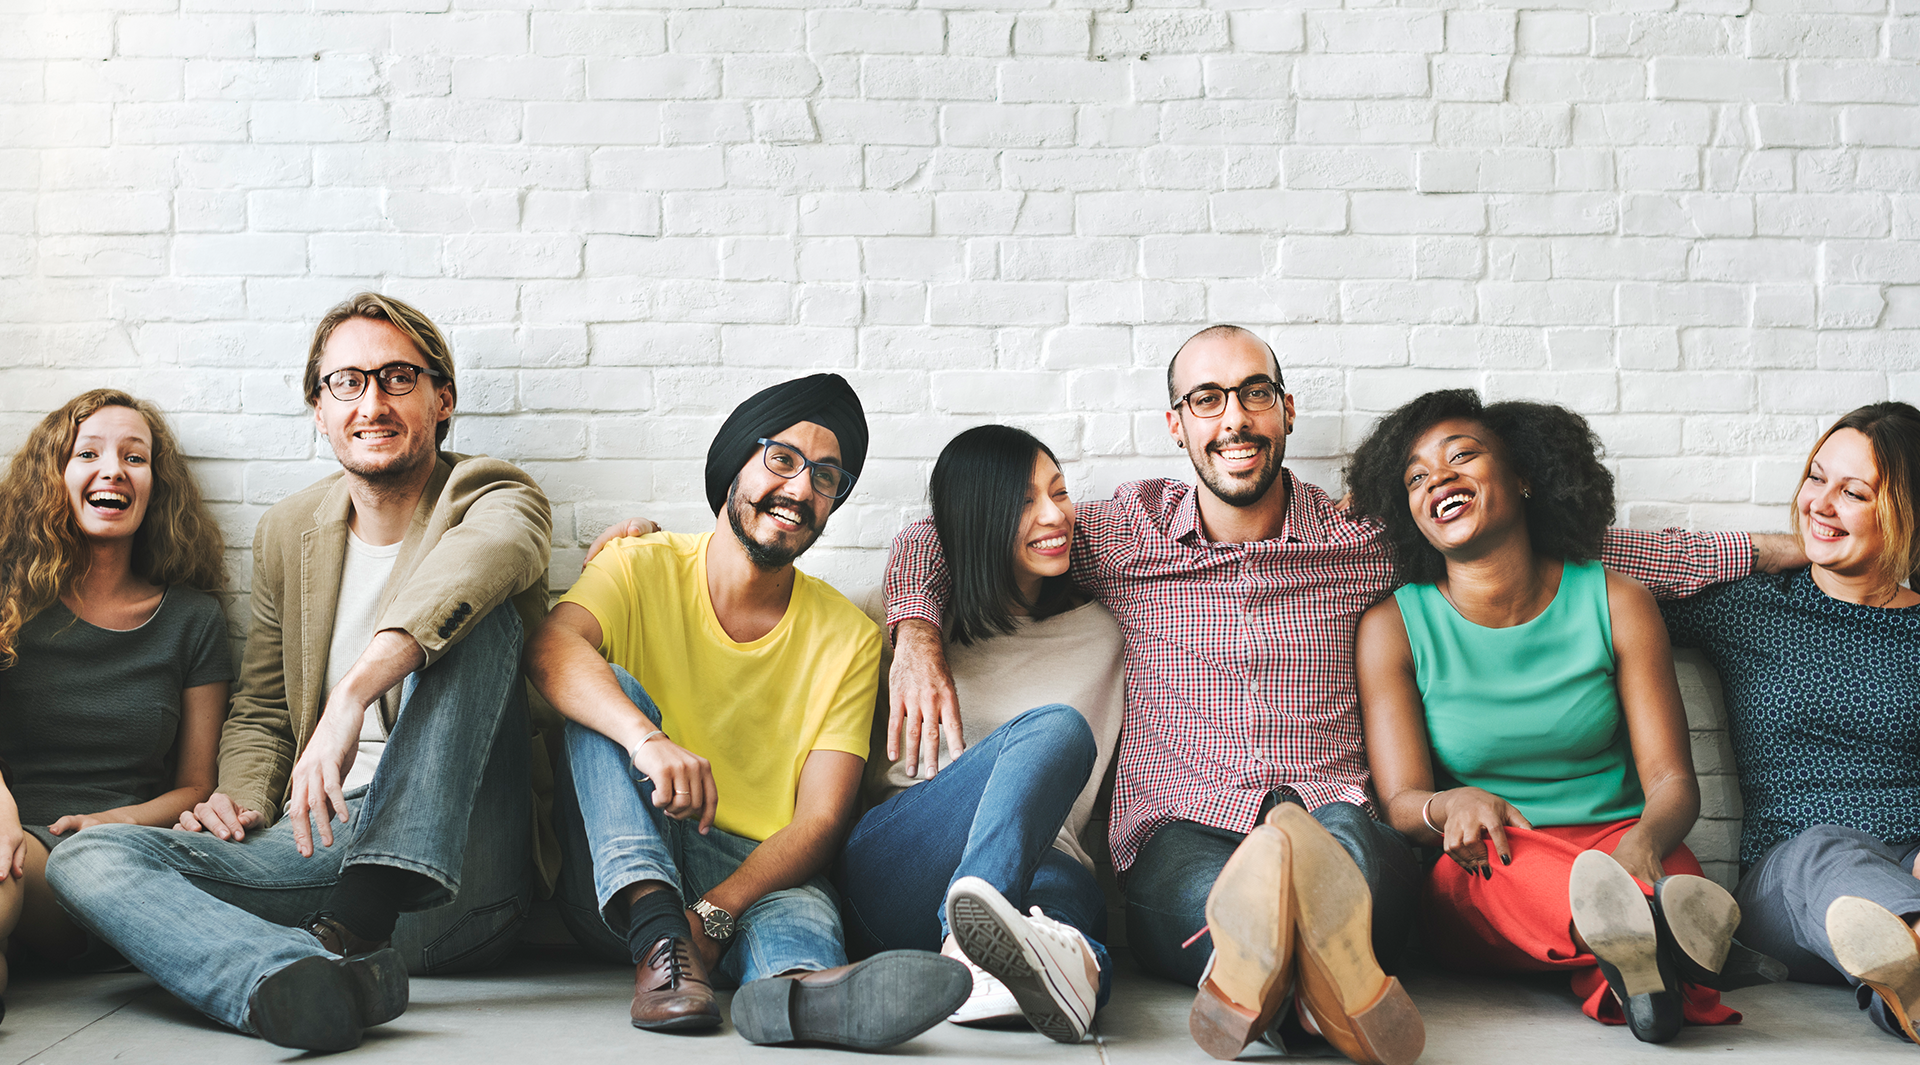 Group of young diverse individuals sitting againts brick wall